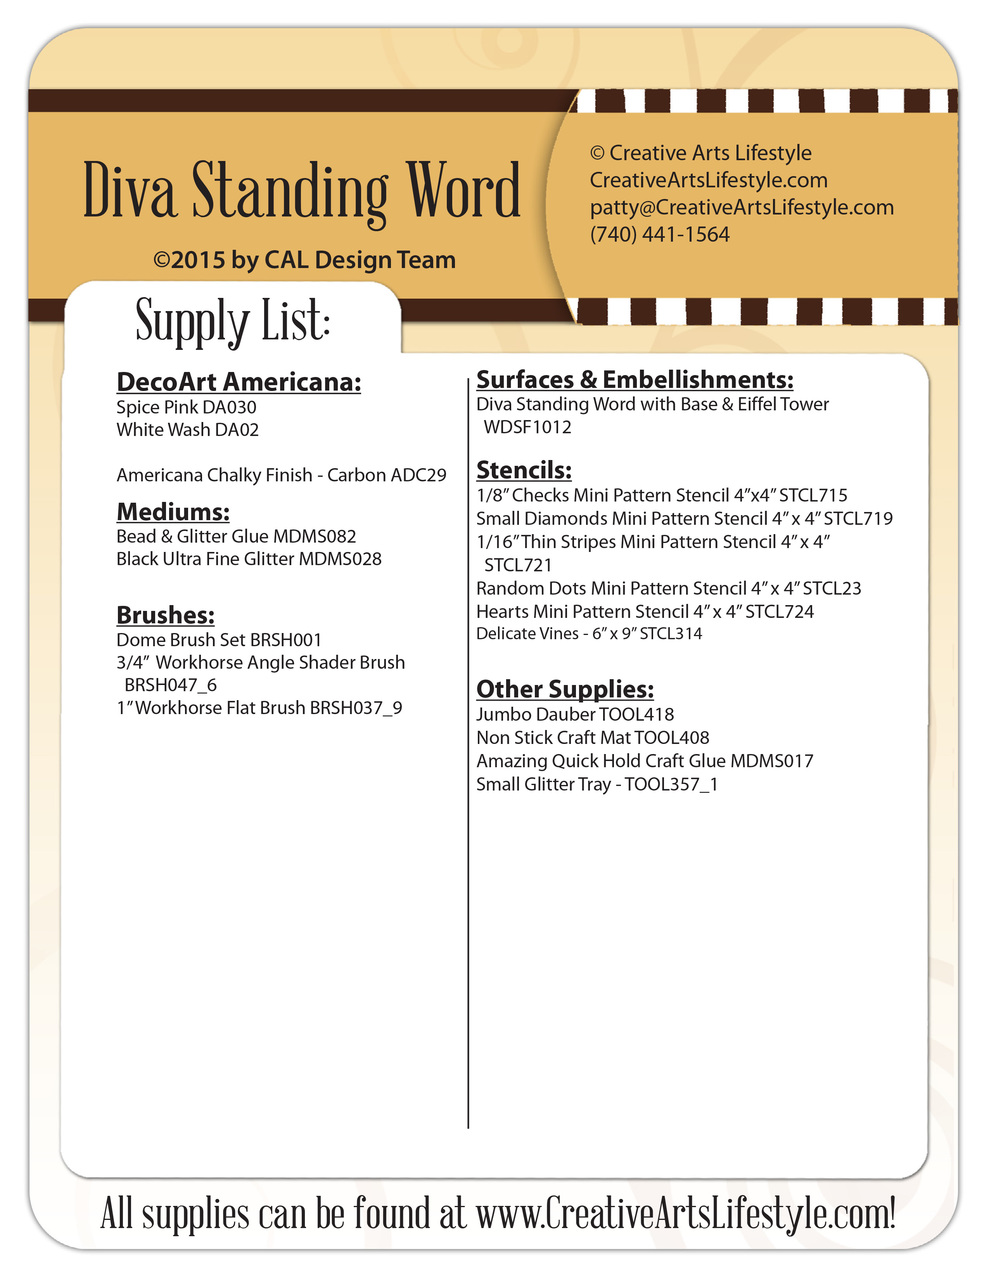 Diva Standing Word Pattern Packet - Patricia Rawlinson